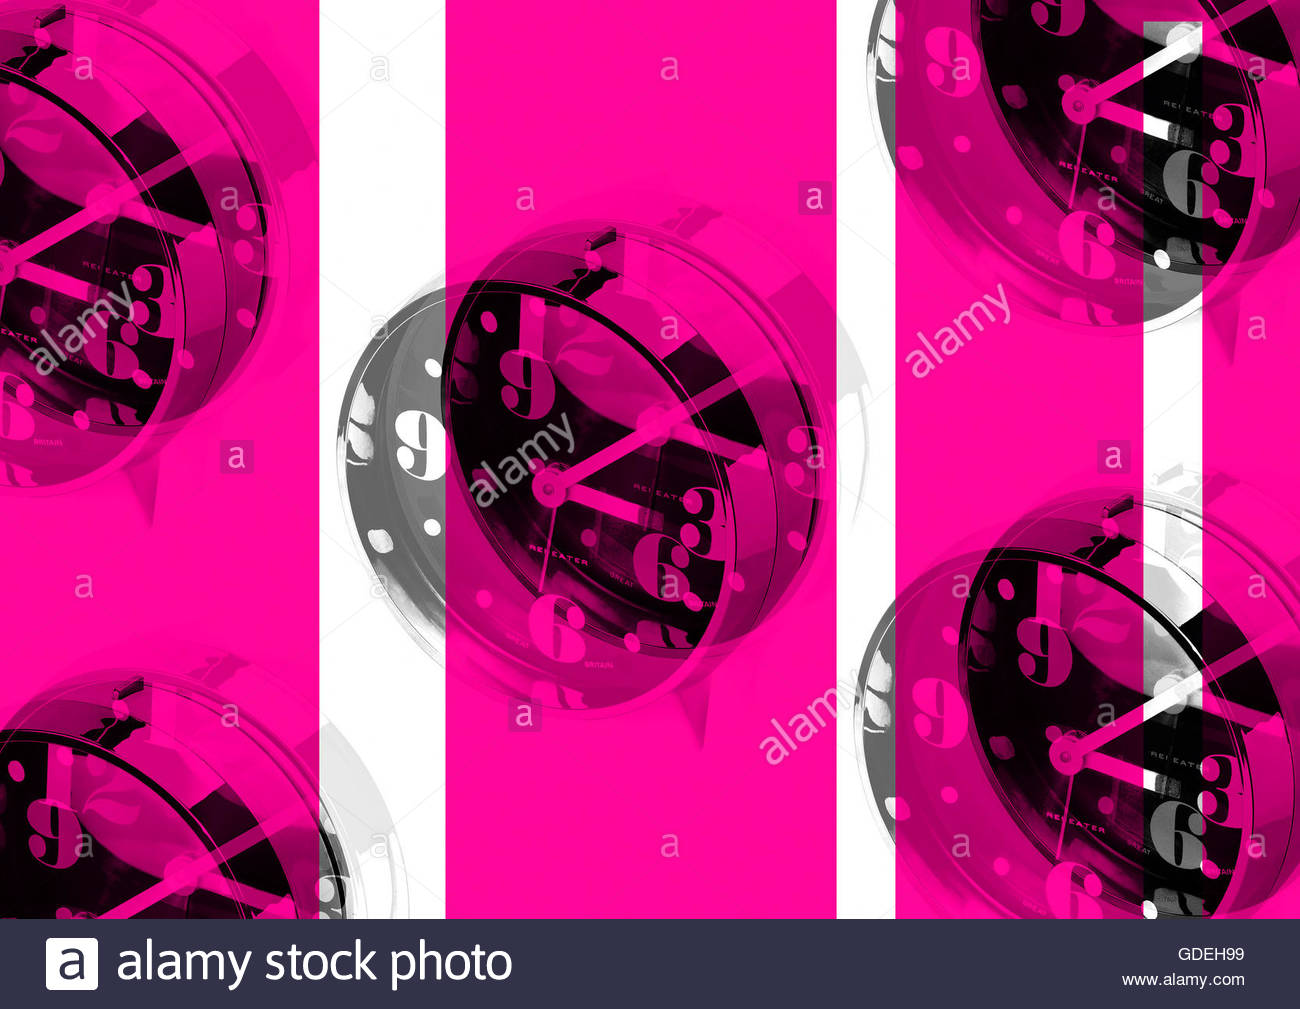 Vintage retro sixties boogaloo clock alarm repeat London look - Stock Image